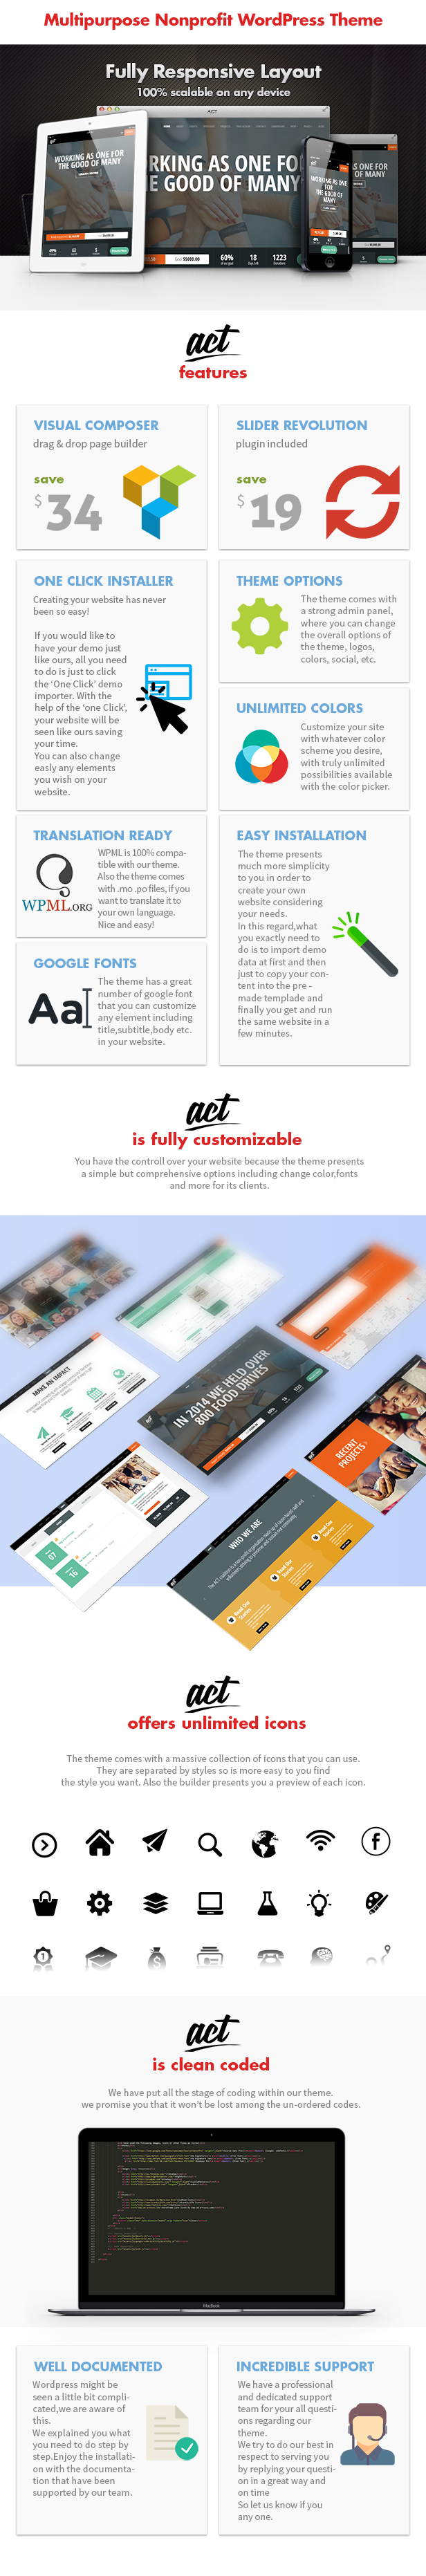 Act - Nonprofit Charity Theme - 3